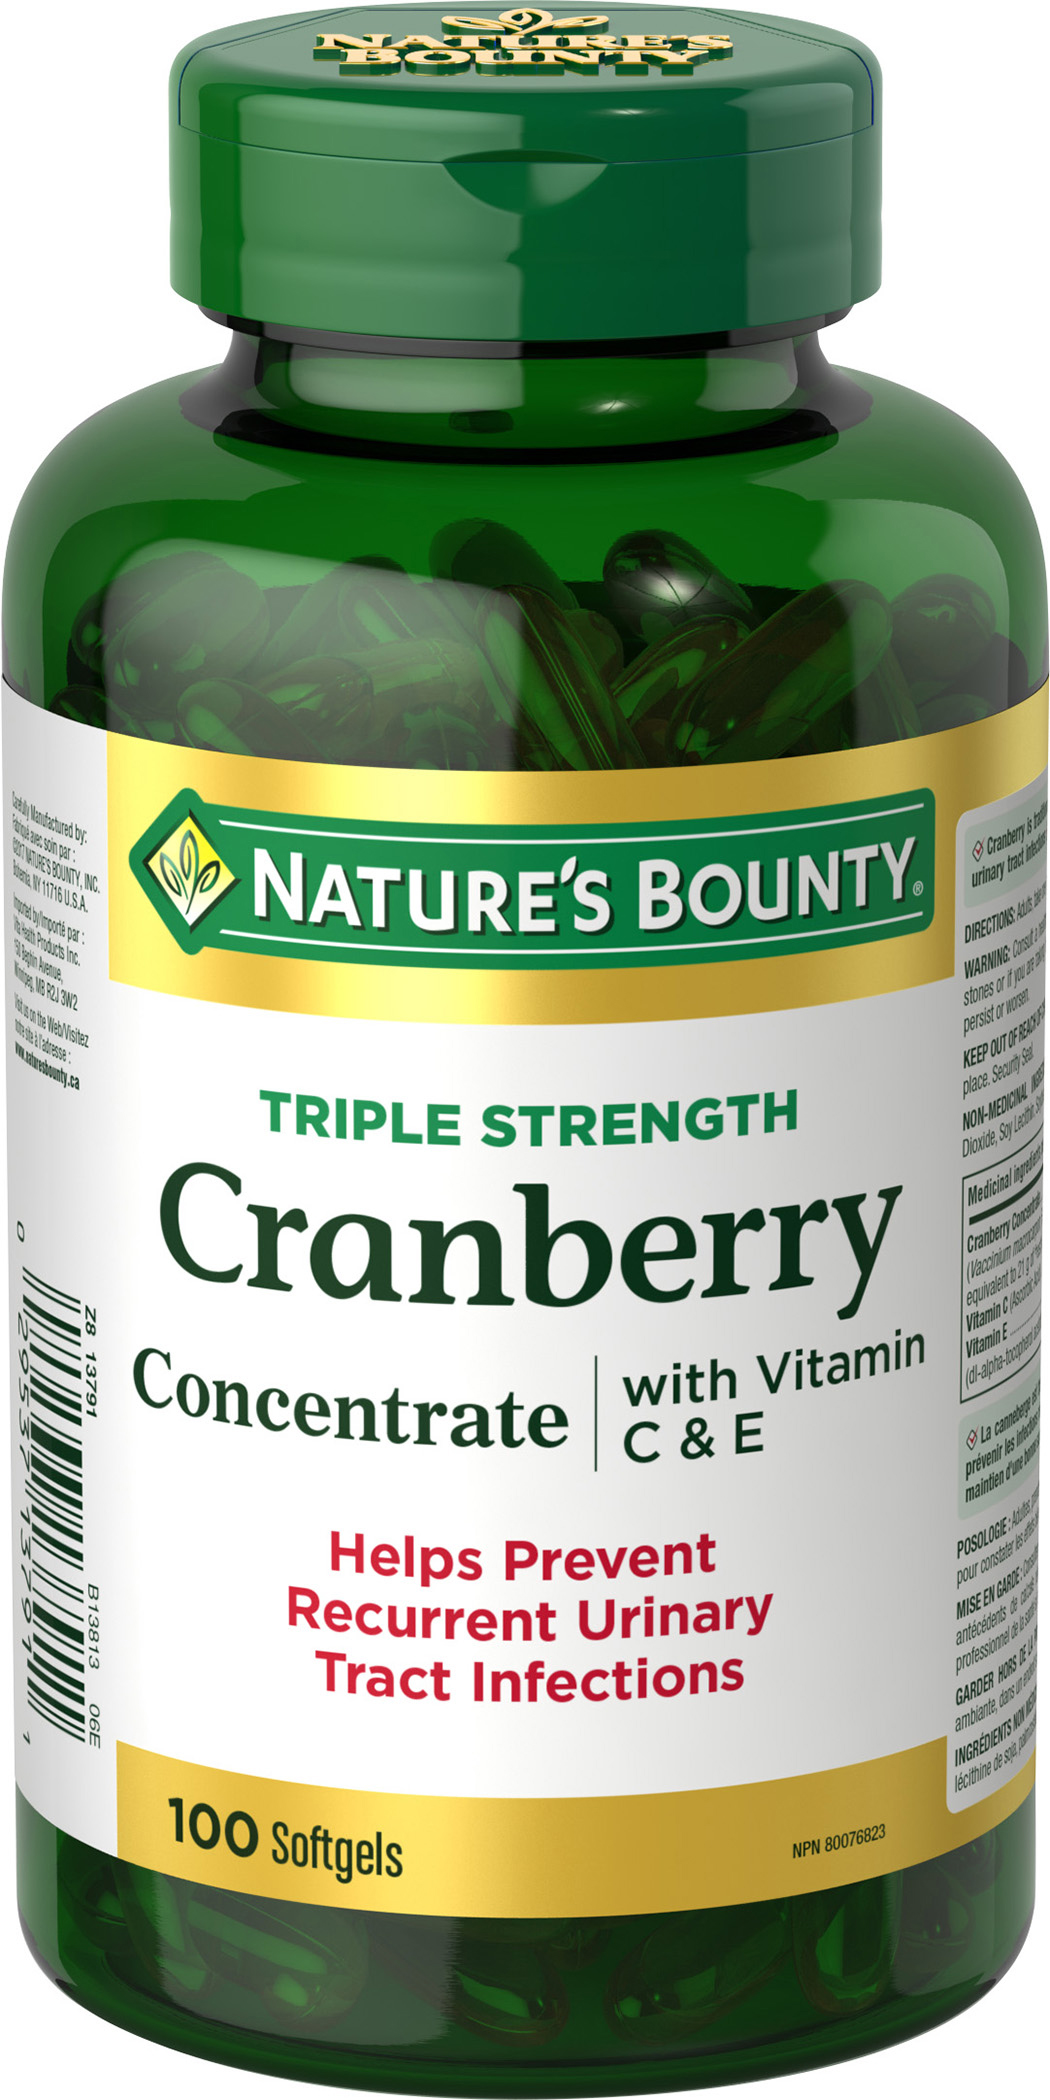 Cranberry with Vitamin C + E